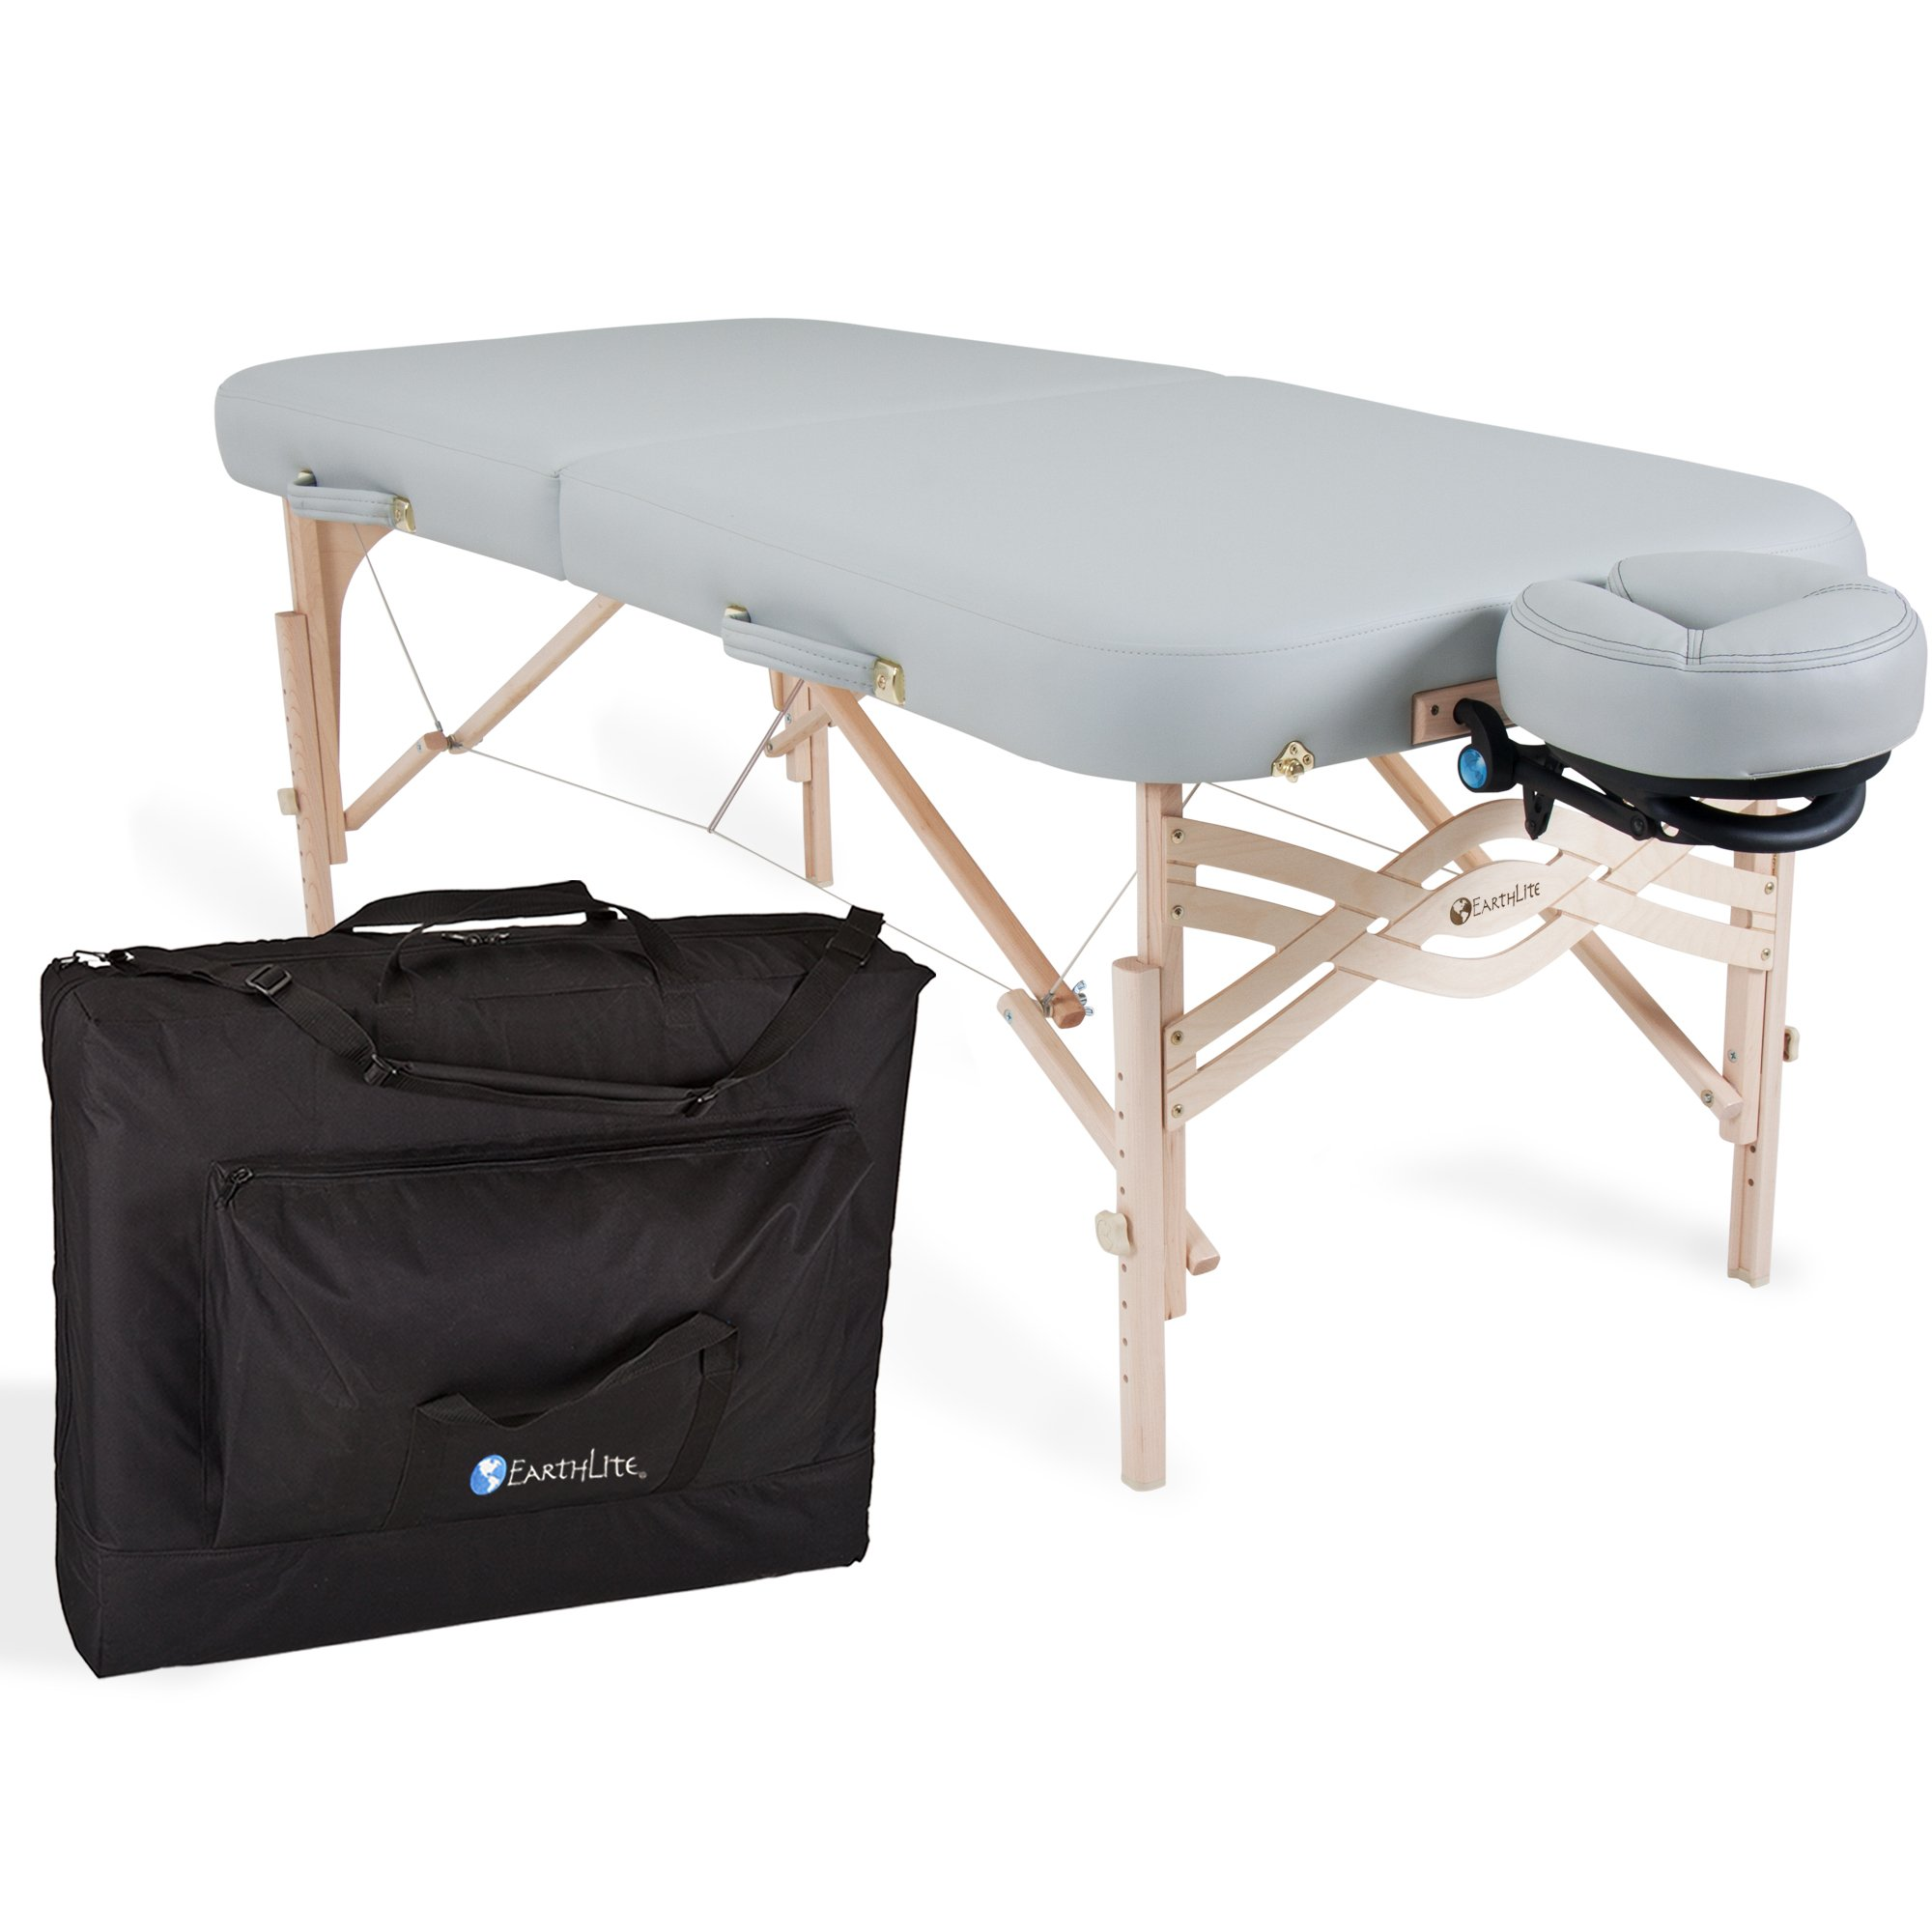 "EARTHLITE Spirit Premium Portable Massage Table Package - Spa-Level Comfort, Deluxe Cushioning incl. Flex-Rest Face Cradle & Strata Face Pillow, Carry Case (30/32"" x 73"")"